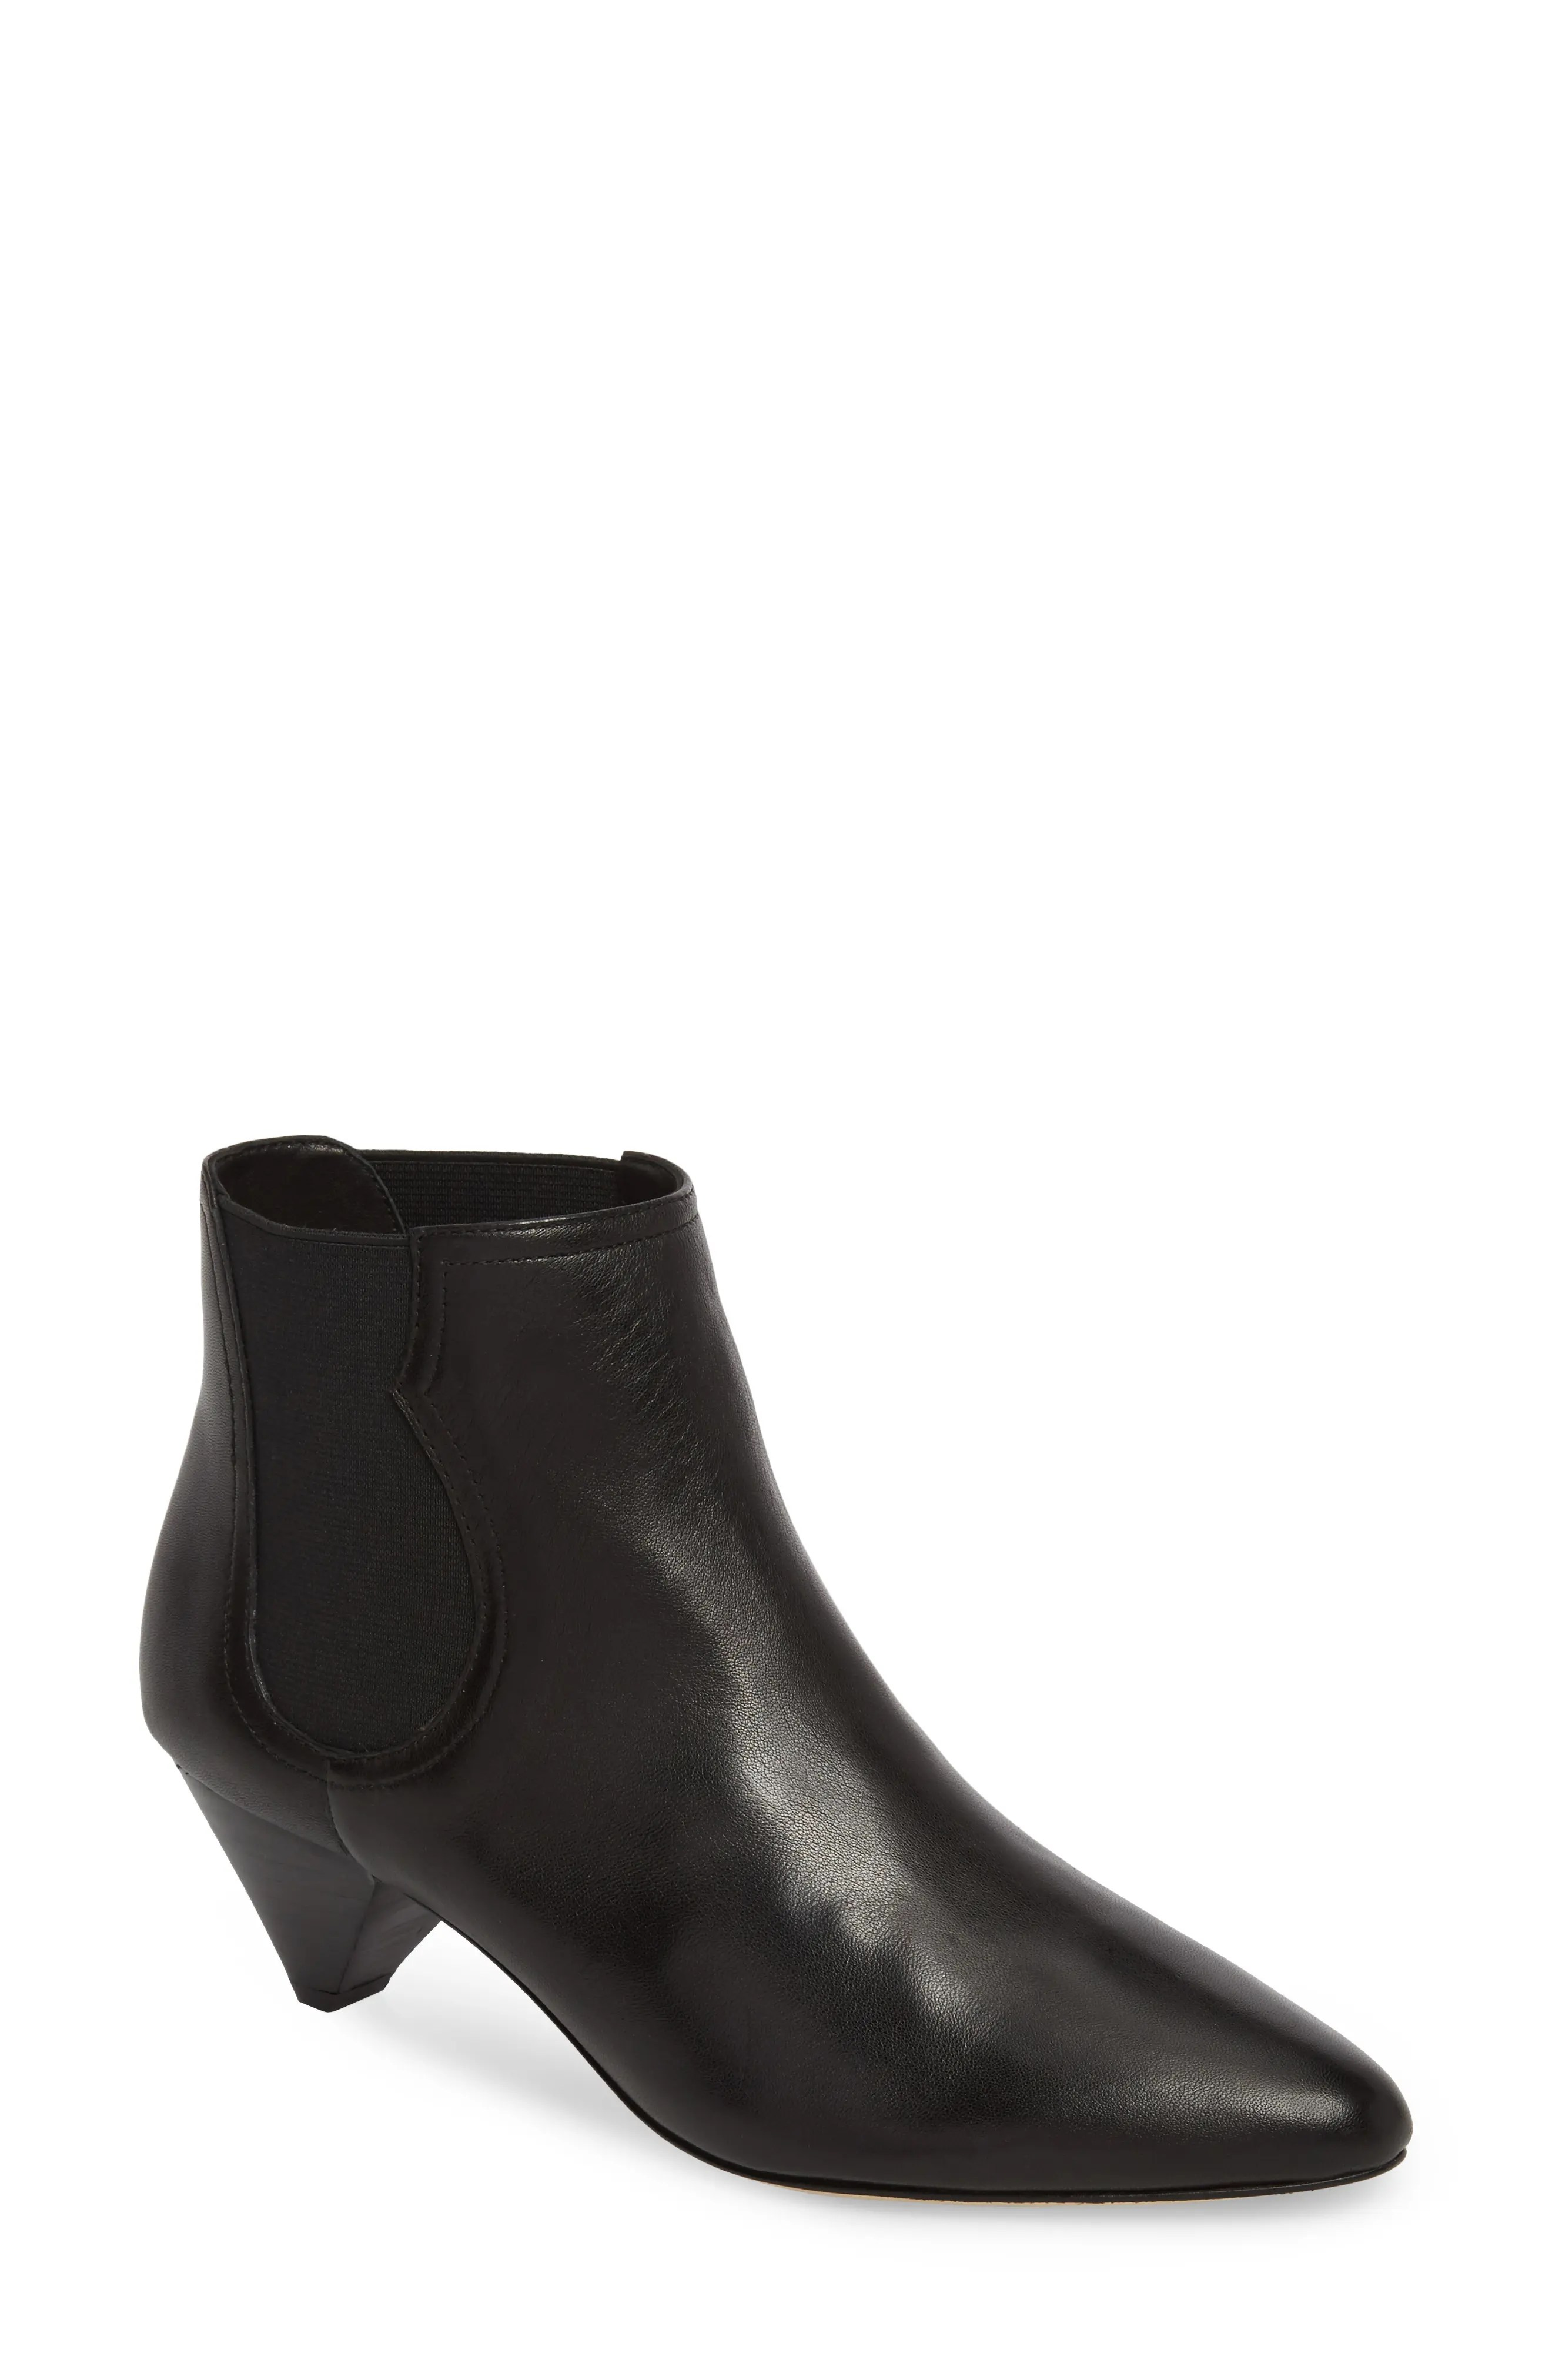 Joie barleena chelsea boot women also   shoes nordstrom rh shoprdstrom